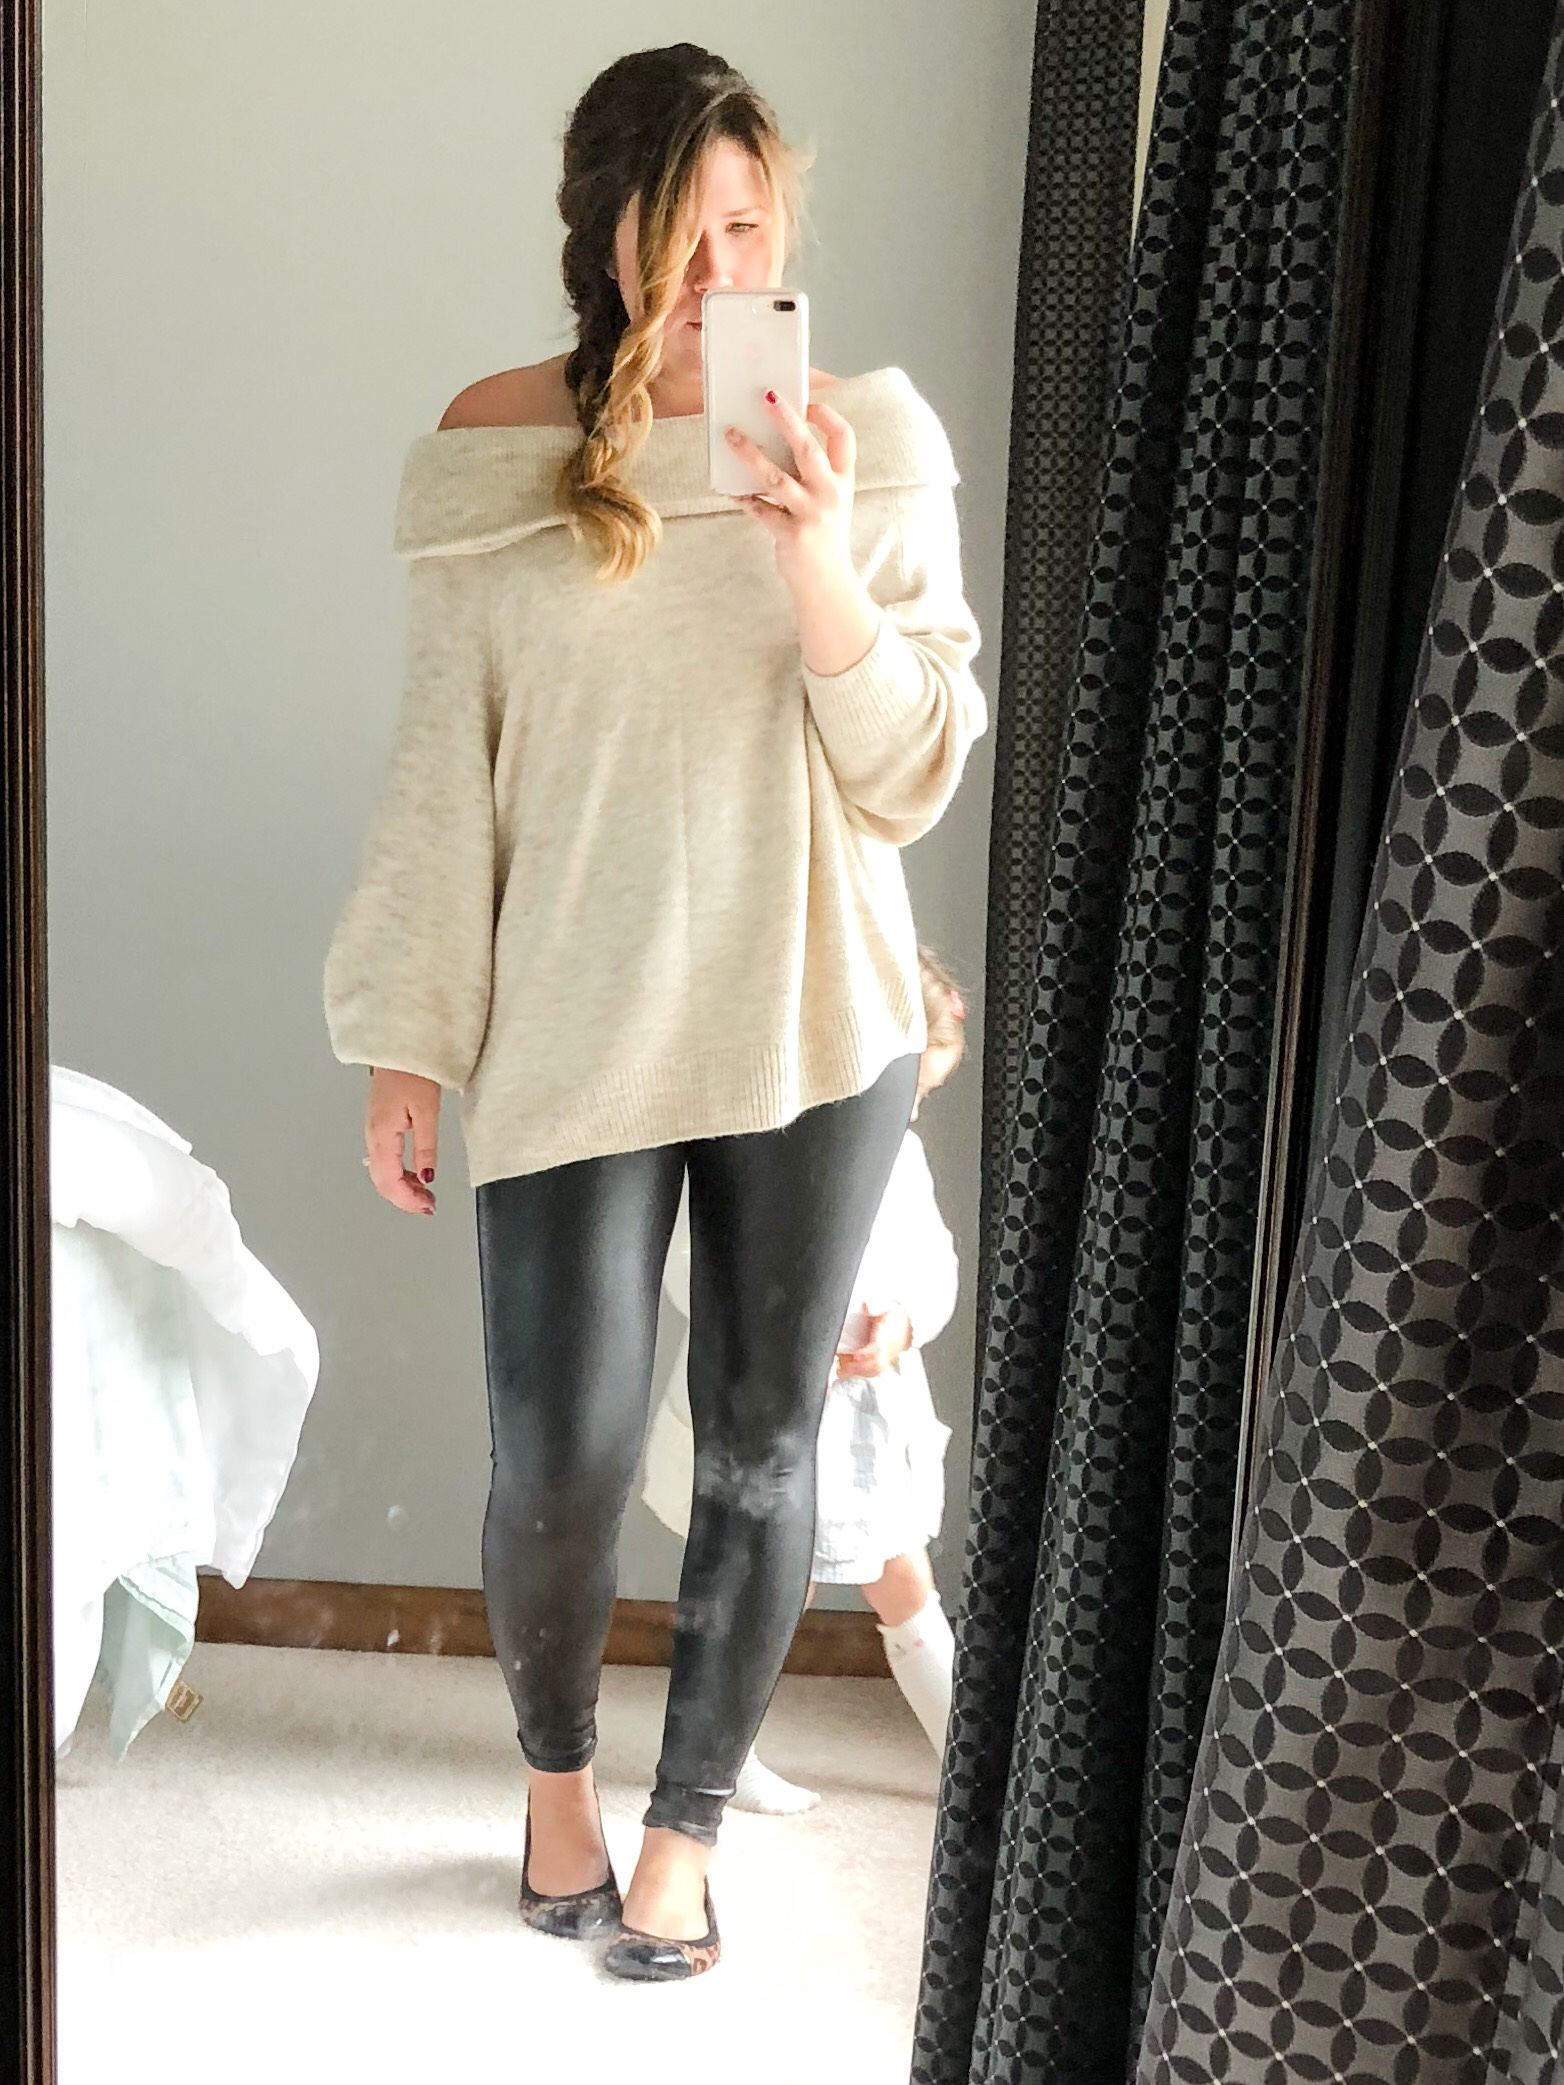 Fall Fashion Ideas: Leather Leggings Outfit, Off the Shoulder Sweater and Leopard Ballet Flats